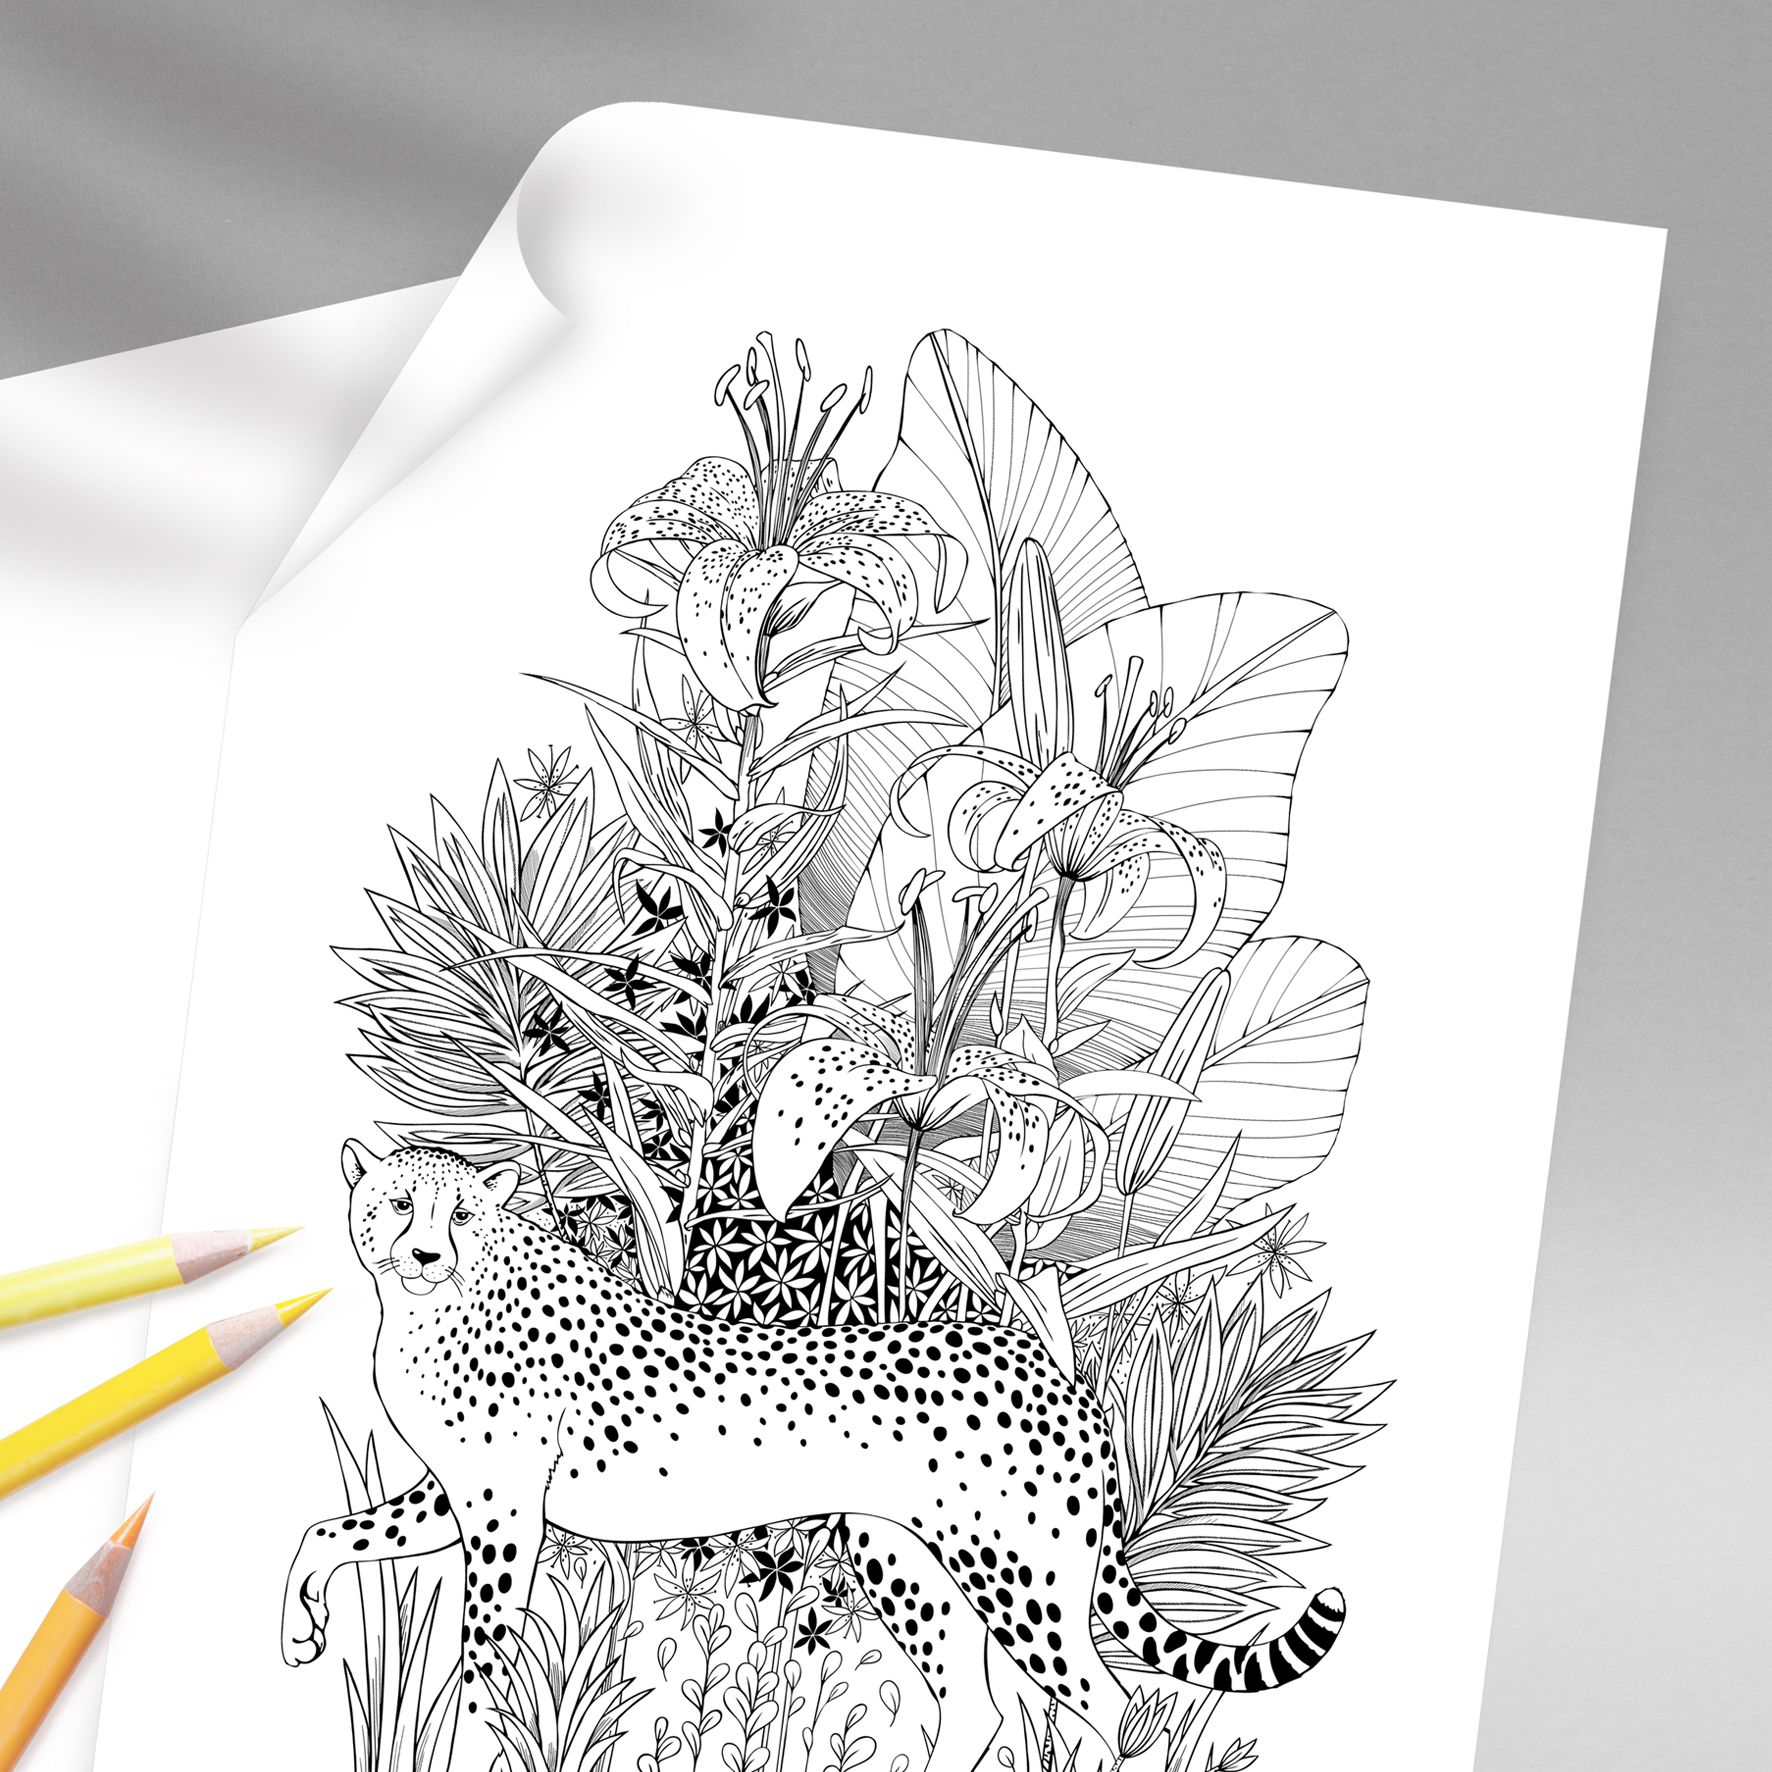 Tropical Life Art Print For Poster Wall Decor Home Etsy In 2020 Art Prints Prints Coloring Pages